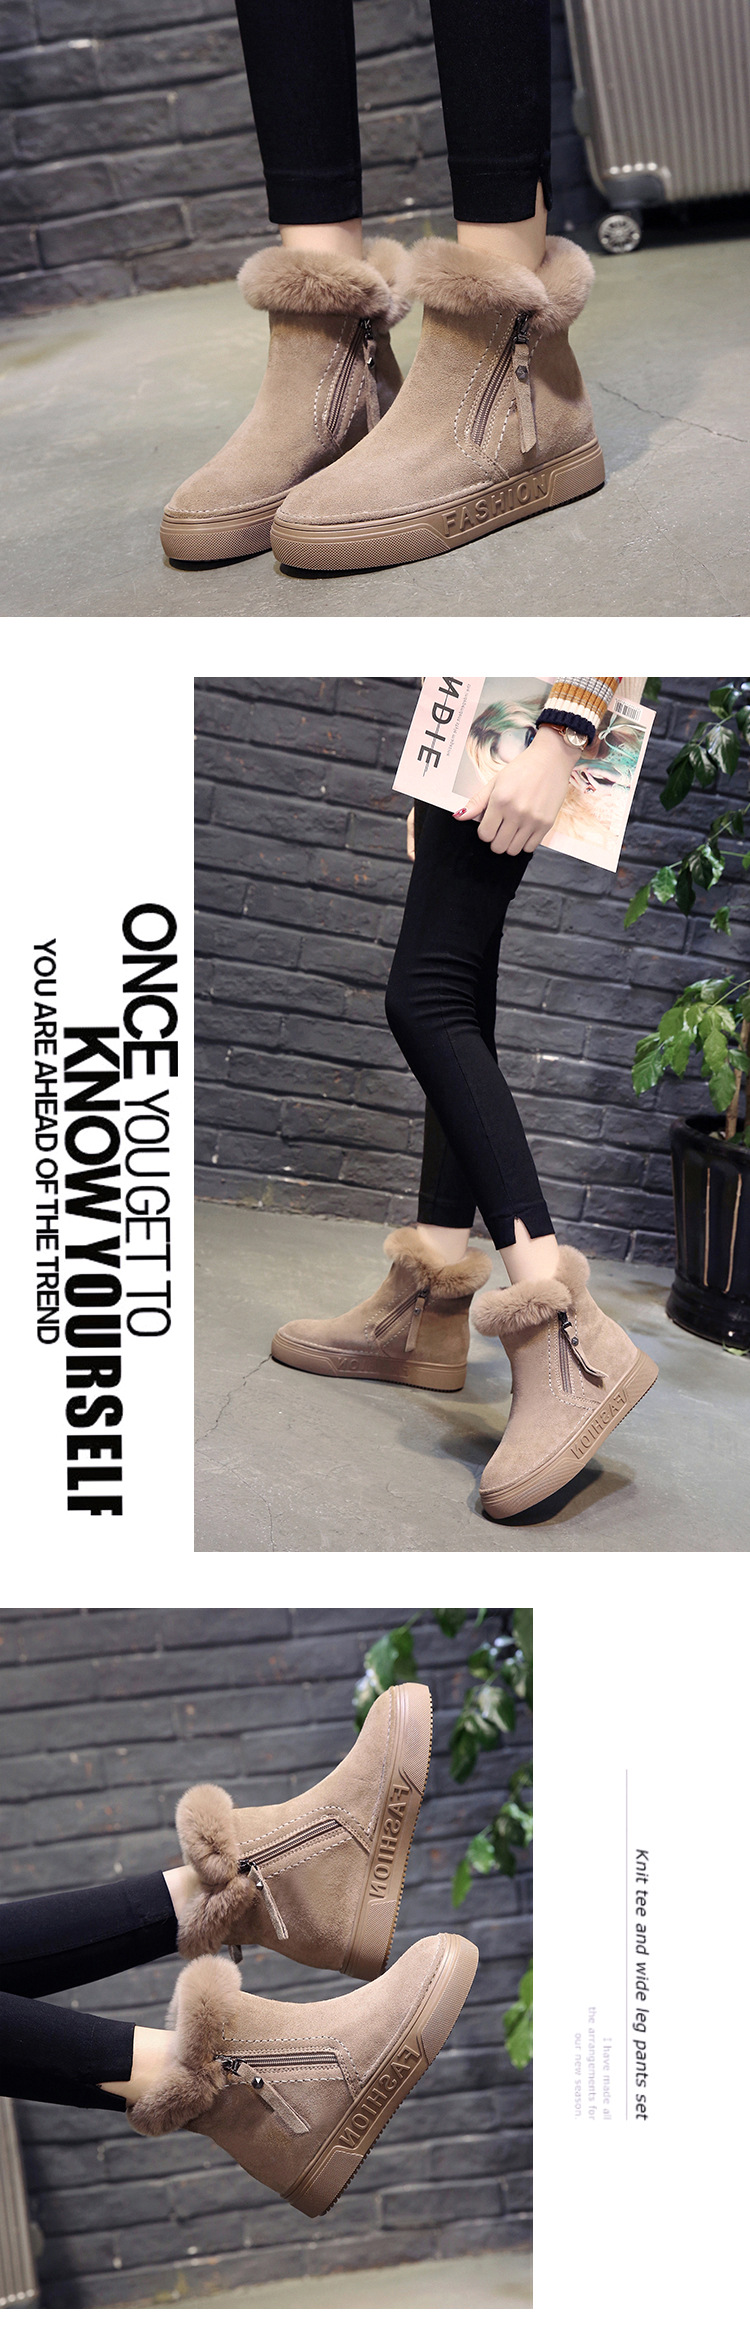 Women Short Ankle Boots Winter Plush Warm Thick Bottom Platform Round Toe Students Leisure Flat Ankle Snow Boots Botas Mujer 49